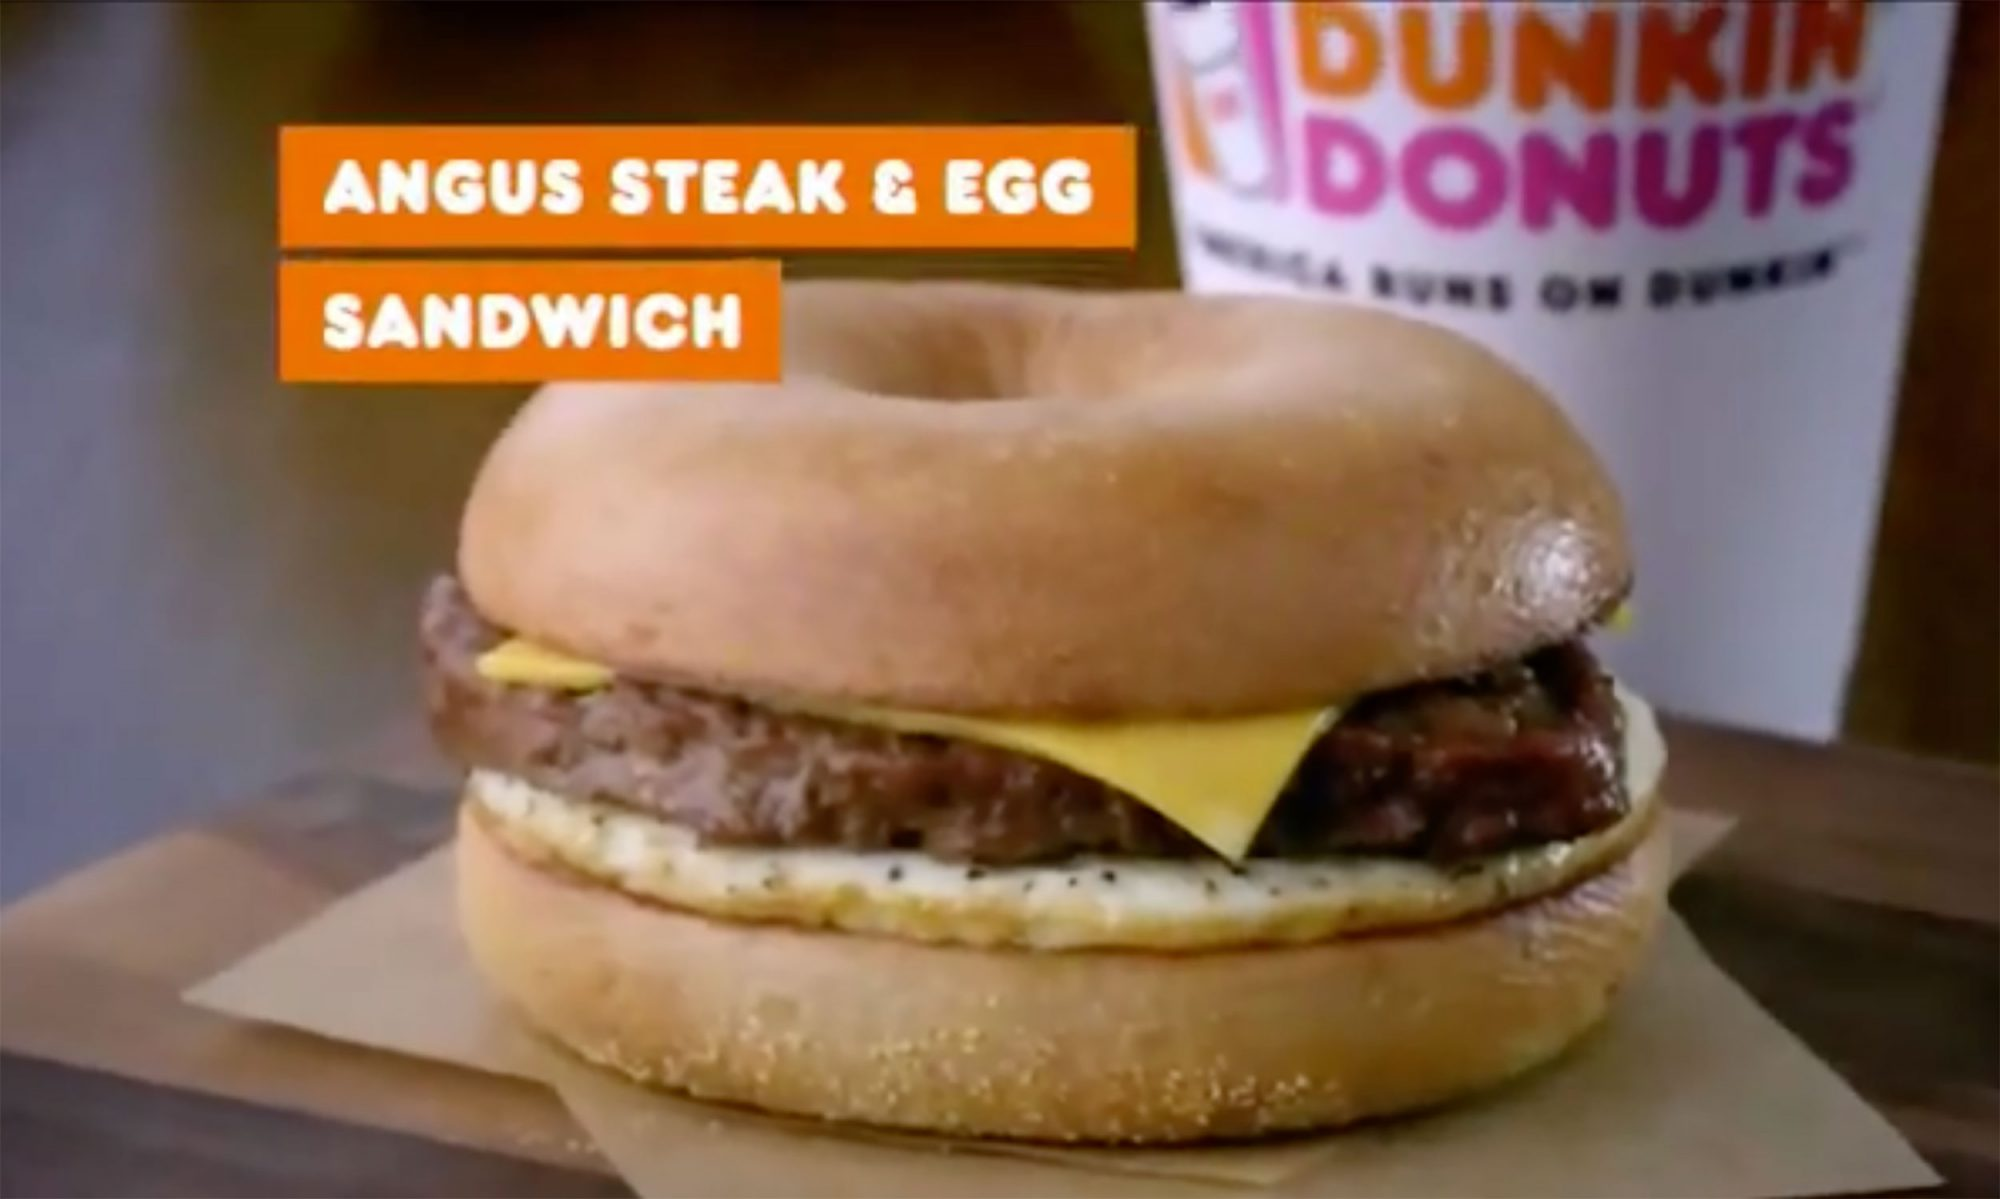 EC: Dunkin' Donuts Is Being Sued for False Meat Advertising